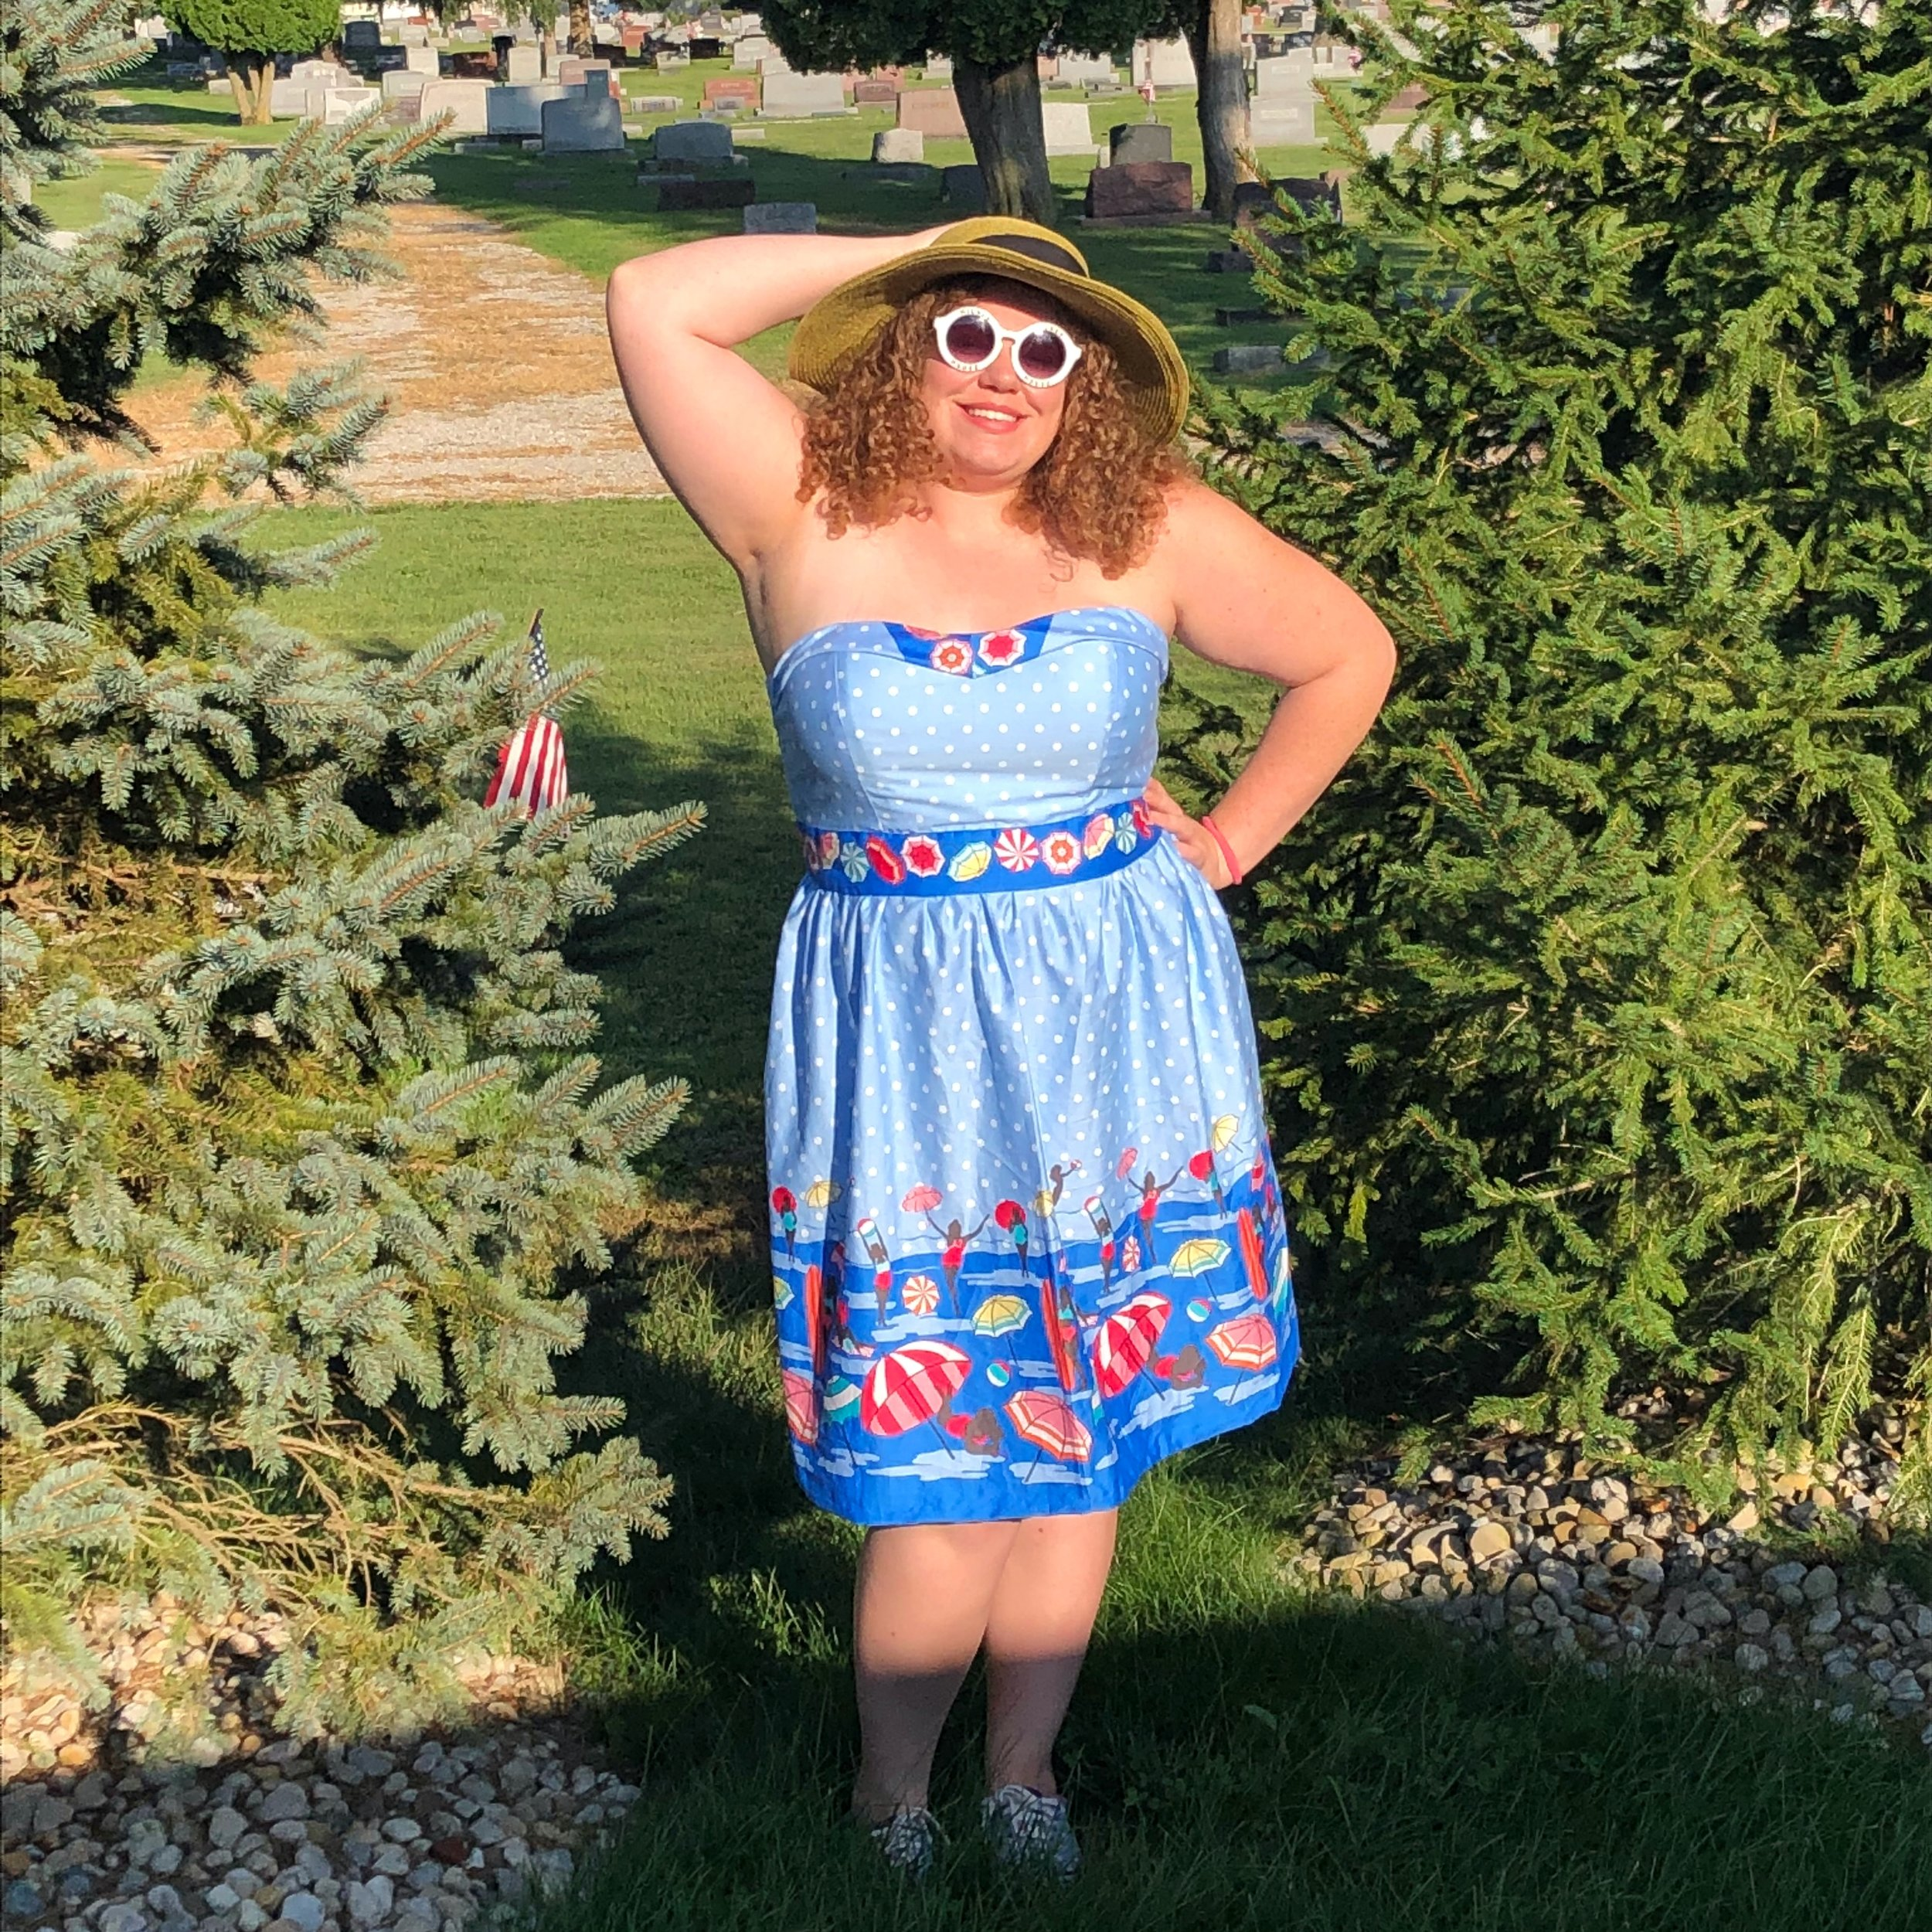 Woman with curly auburn hair standing outside with a sun hat and sunglasses on wearing a blue polka dot dress with pinups in swimsuits printed on it